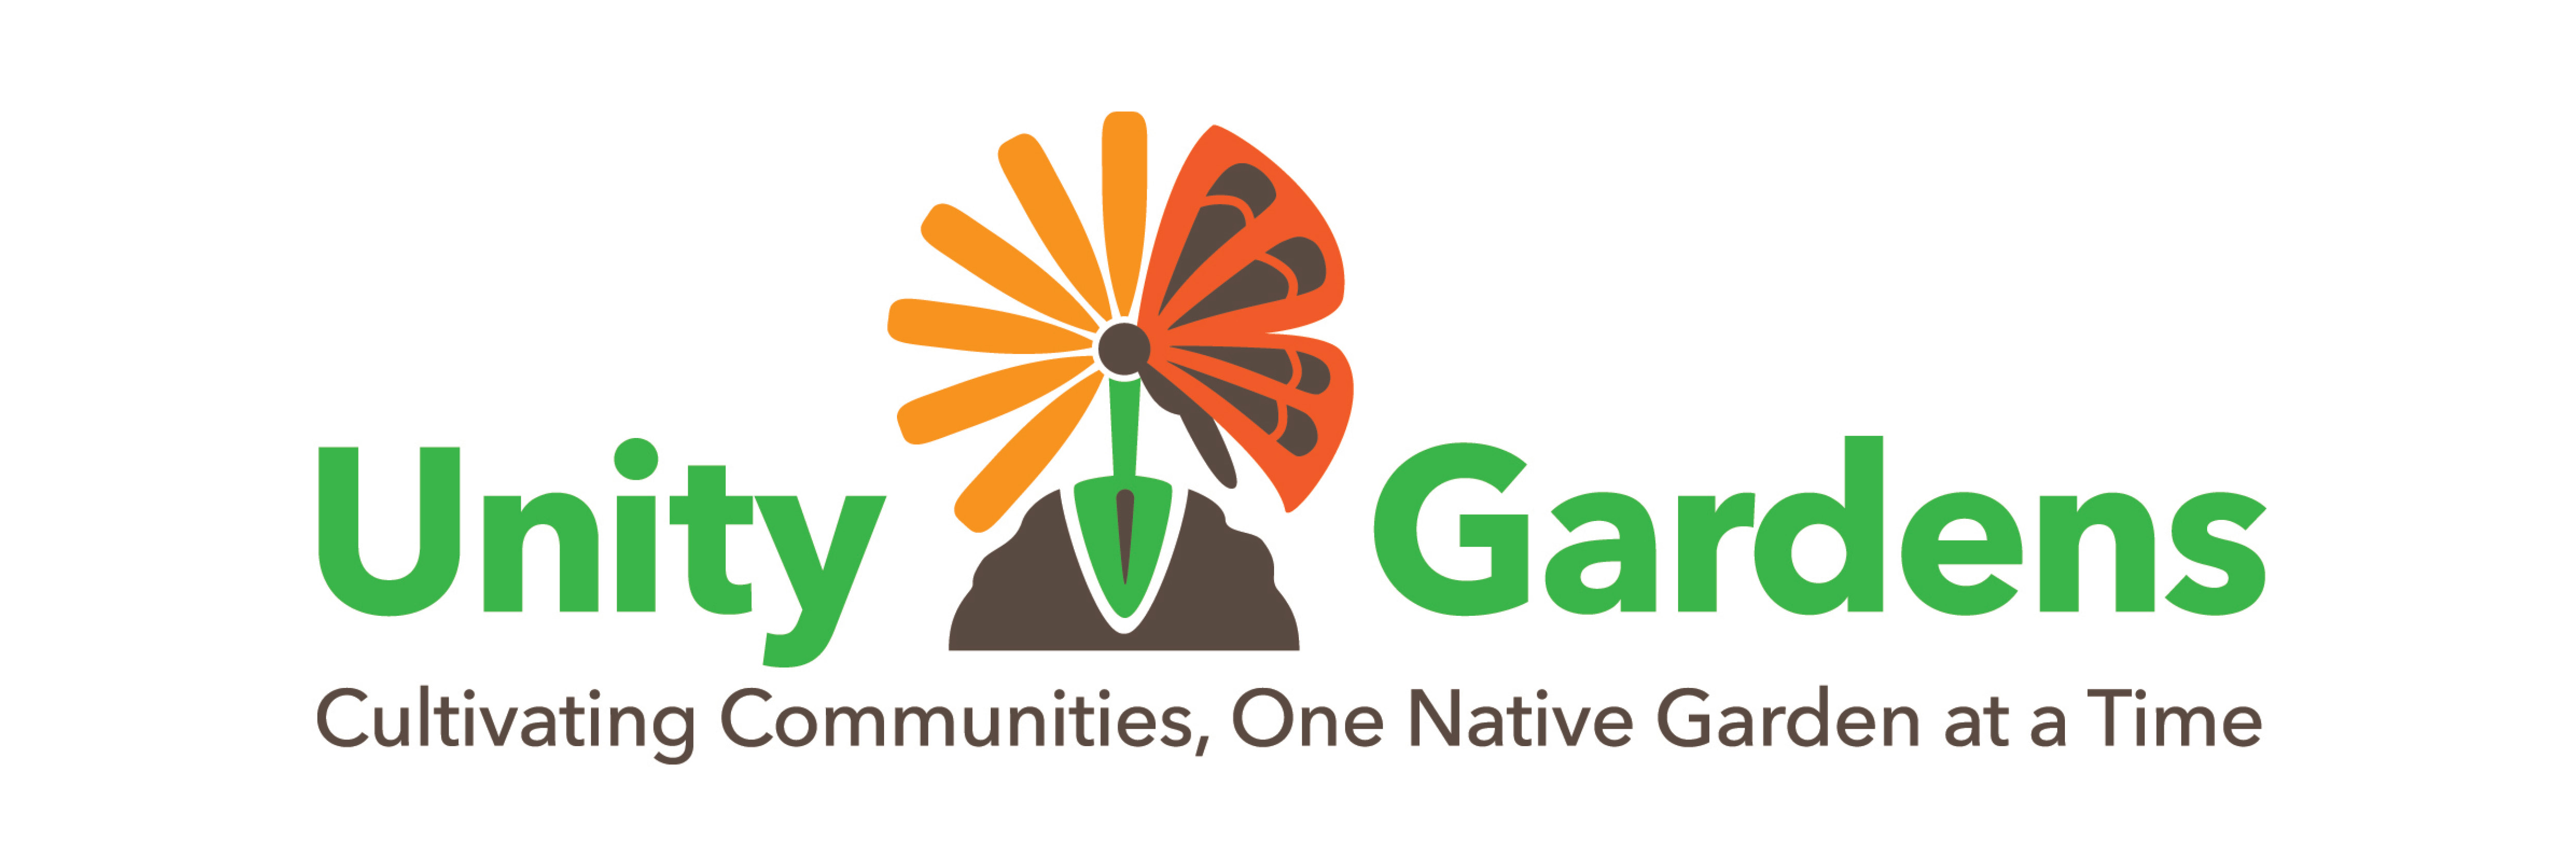 Cultivating Communities, One Native Garden at a Time